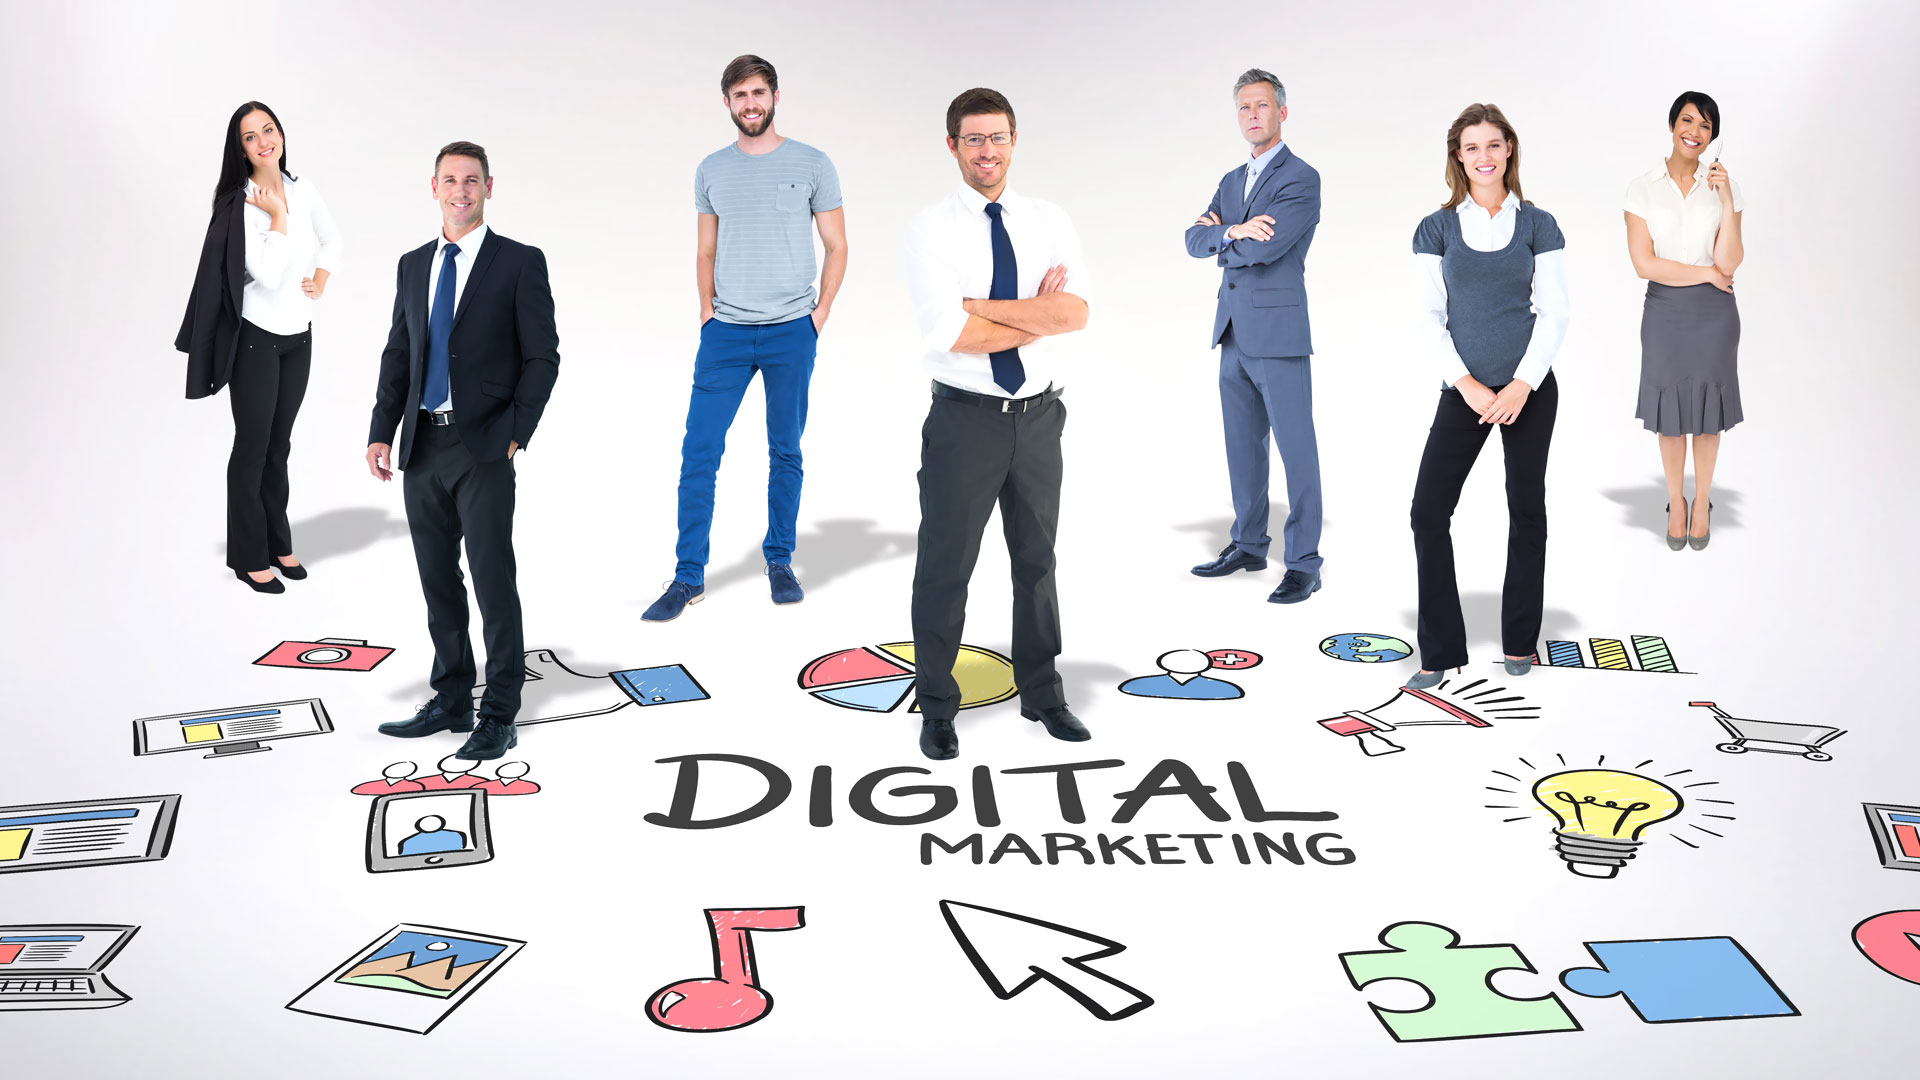 Automate Your Digital Marketing Career